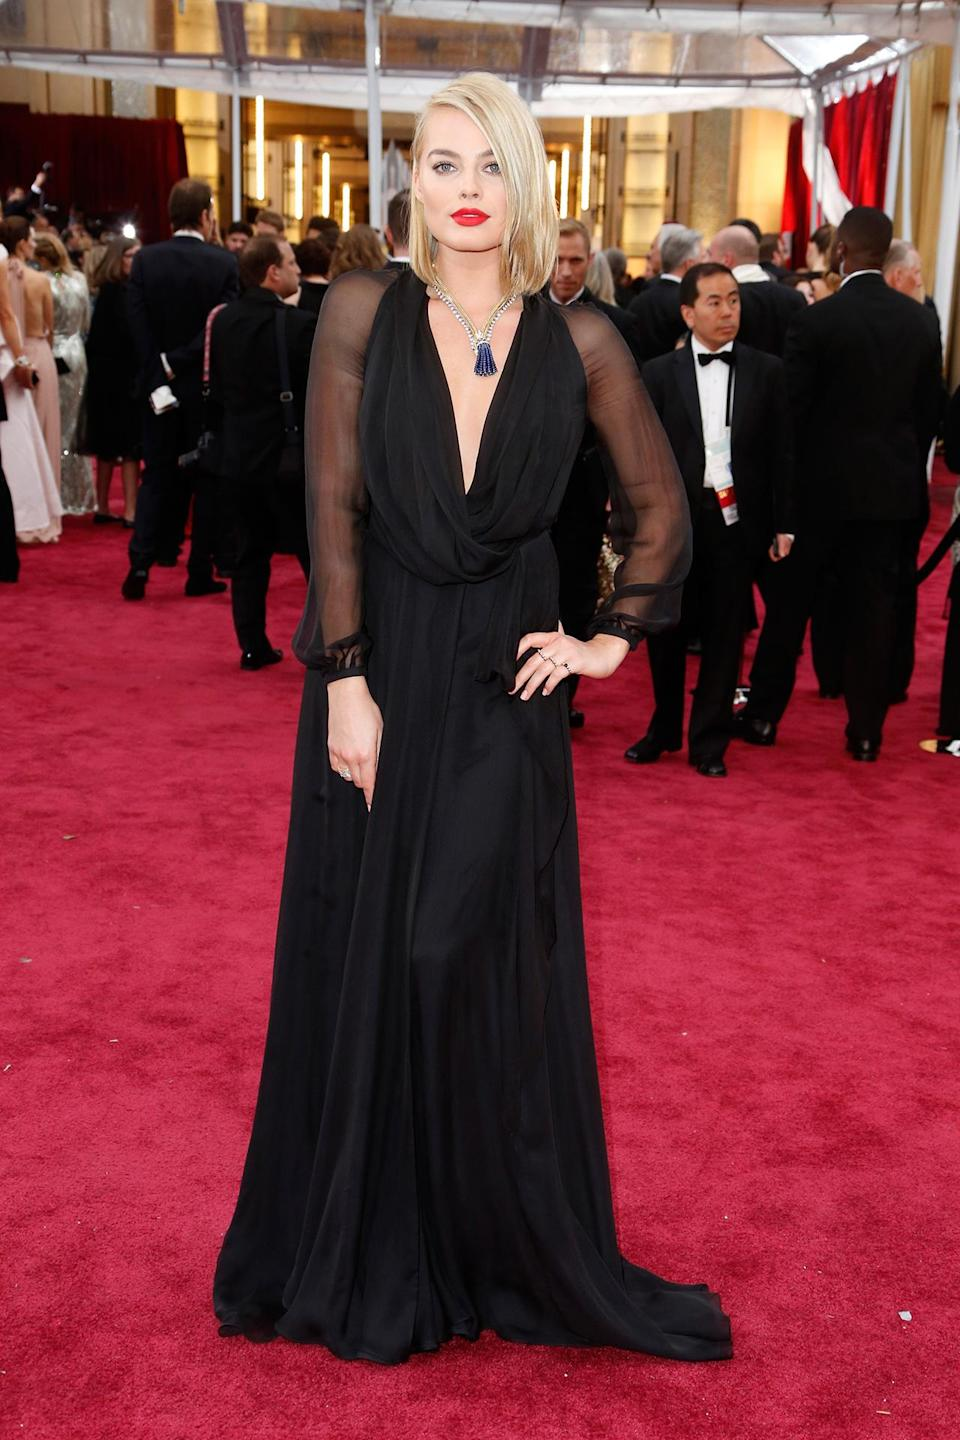 <h2>In Saint Laurent</h2> <p>At the Academy Awards in Los Angeles, 2015</p> <h4>Getty Images</h4>